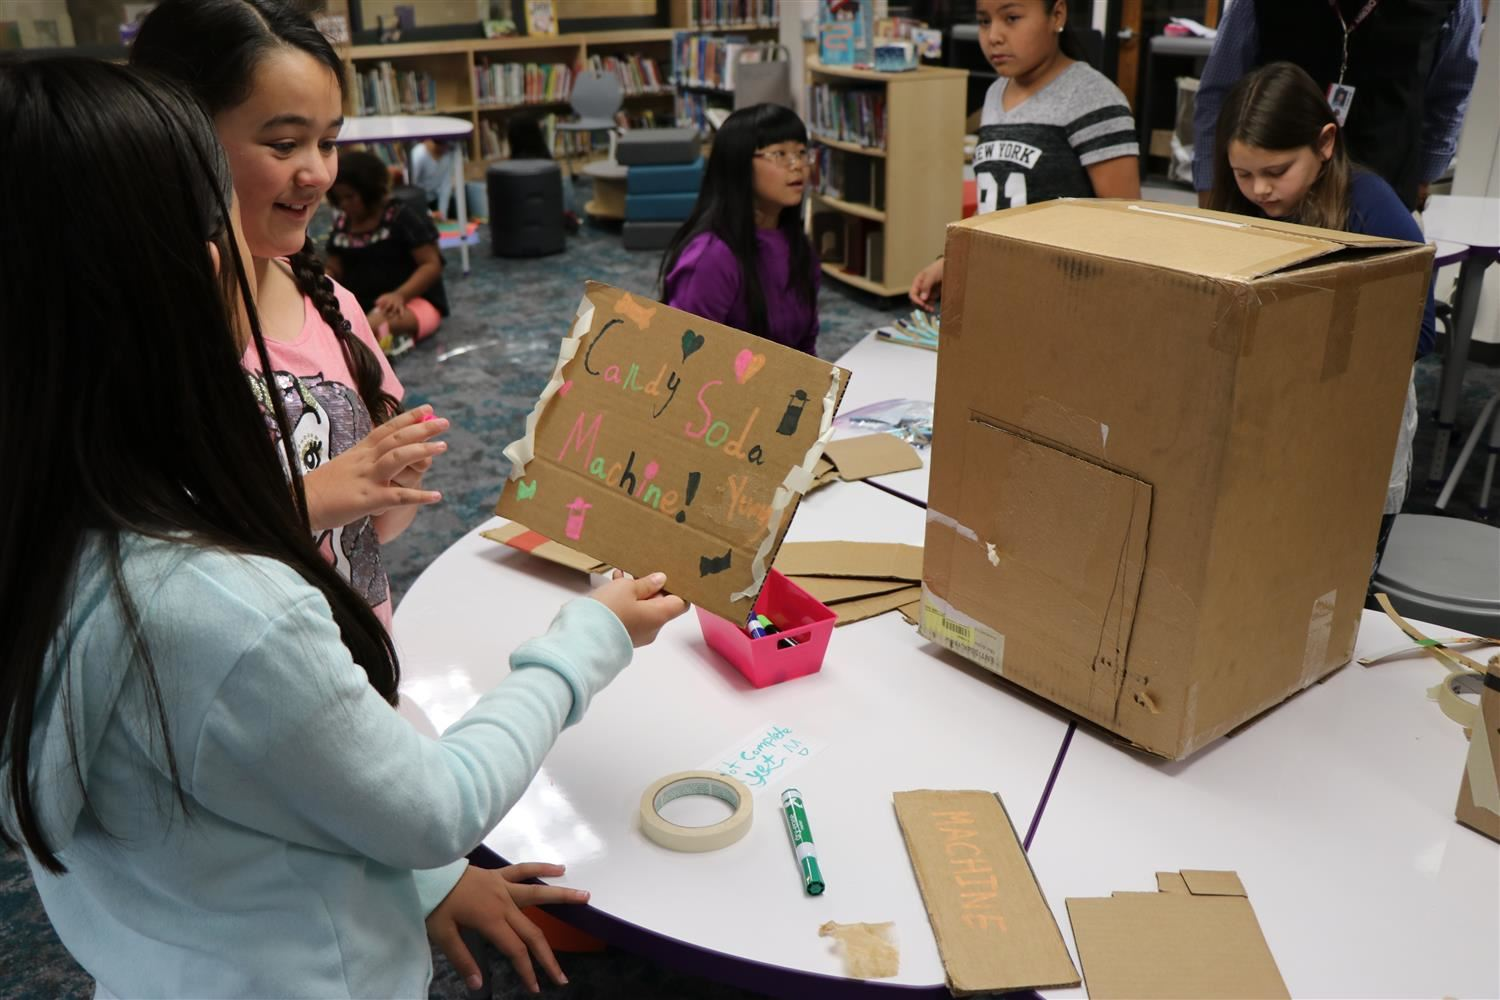 Two partners work on their Candy Soda Machine they created out of cardboard in the newly renovated library.